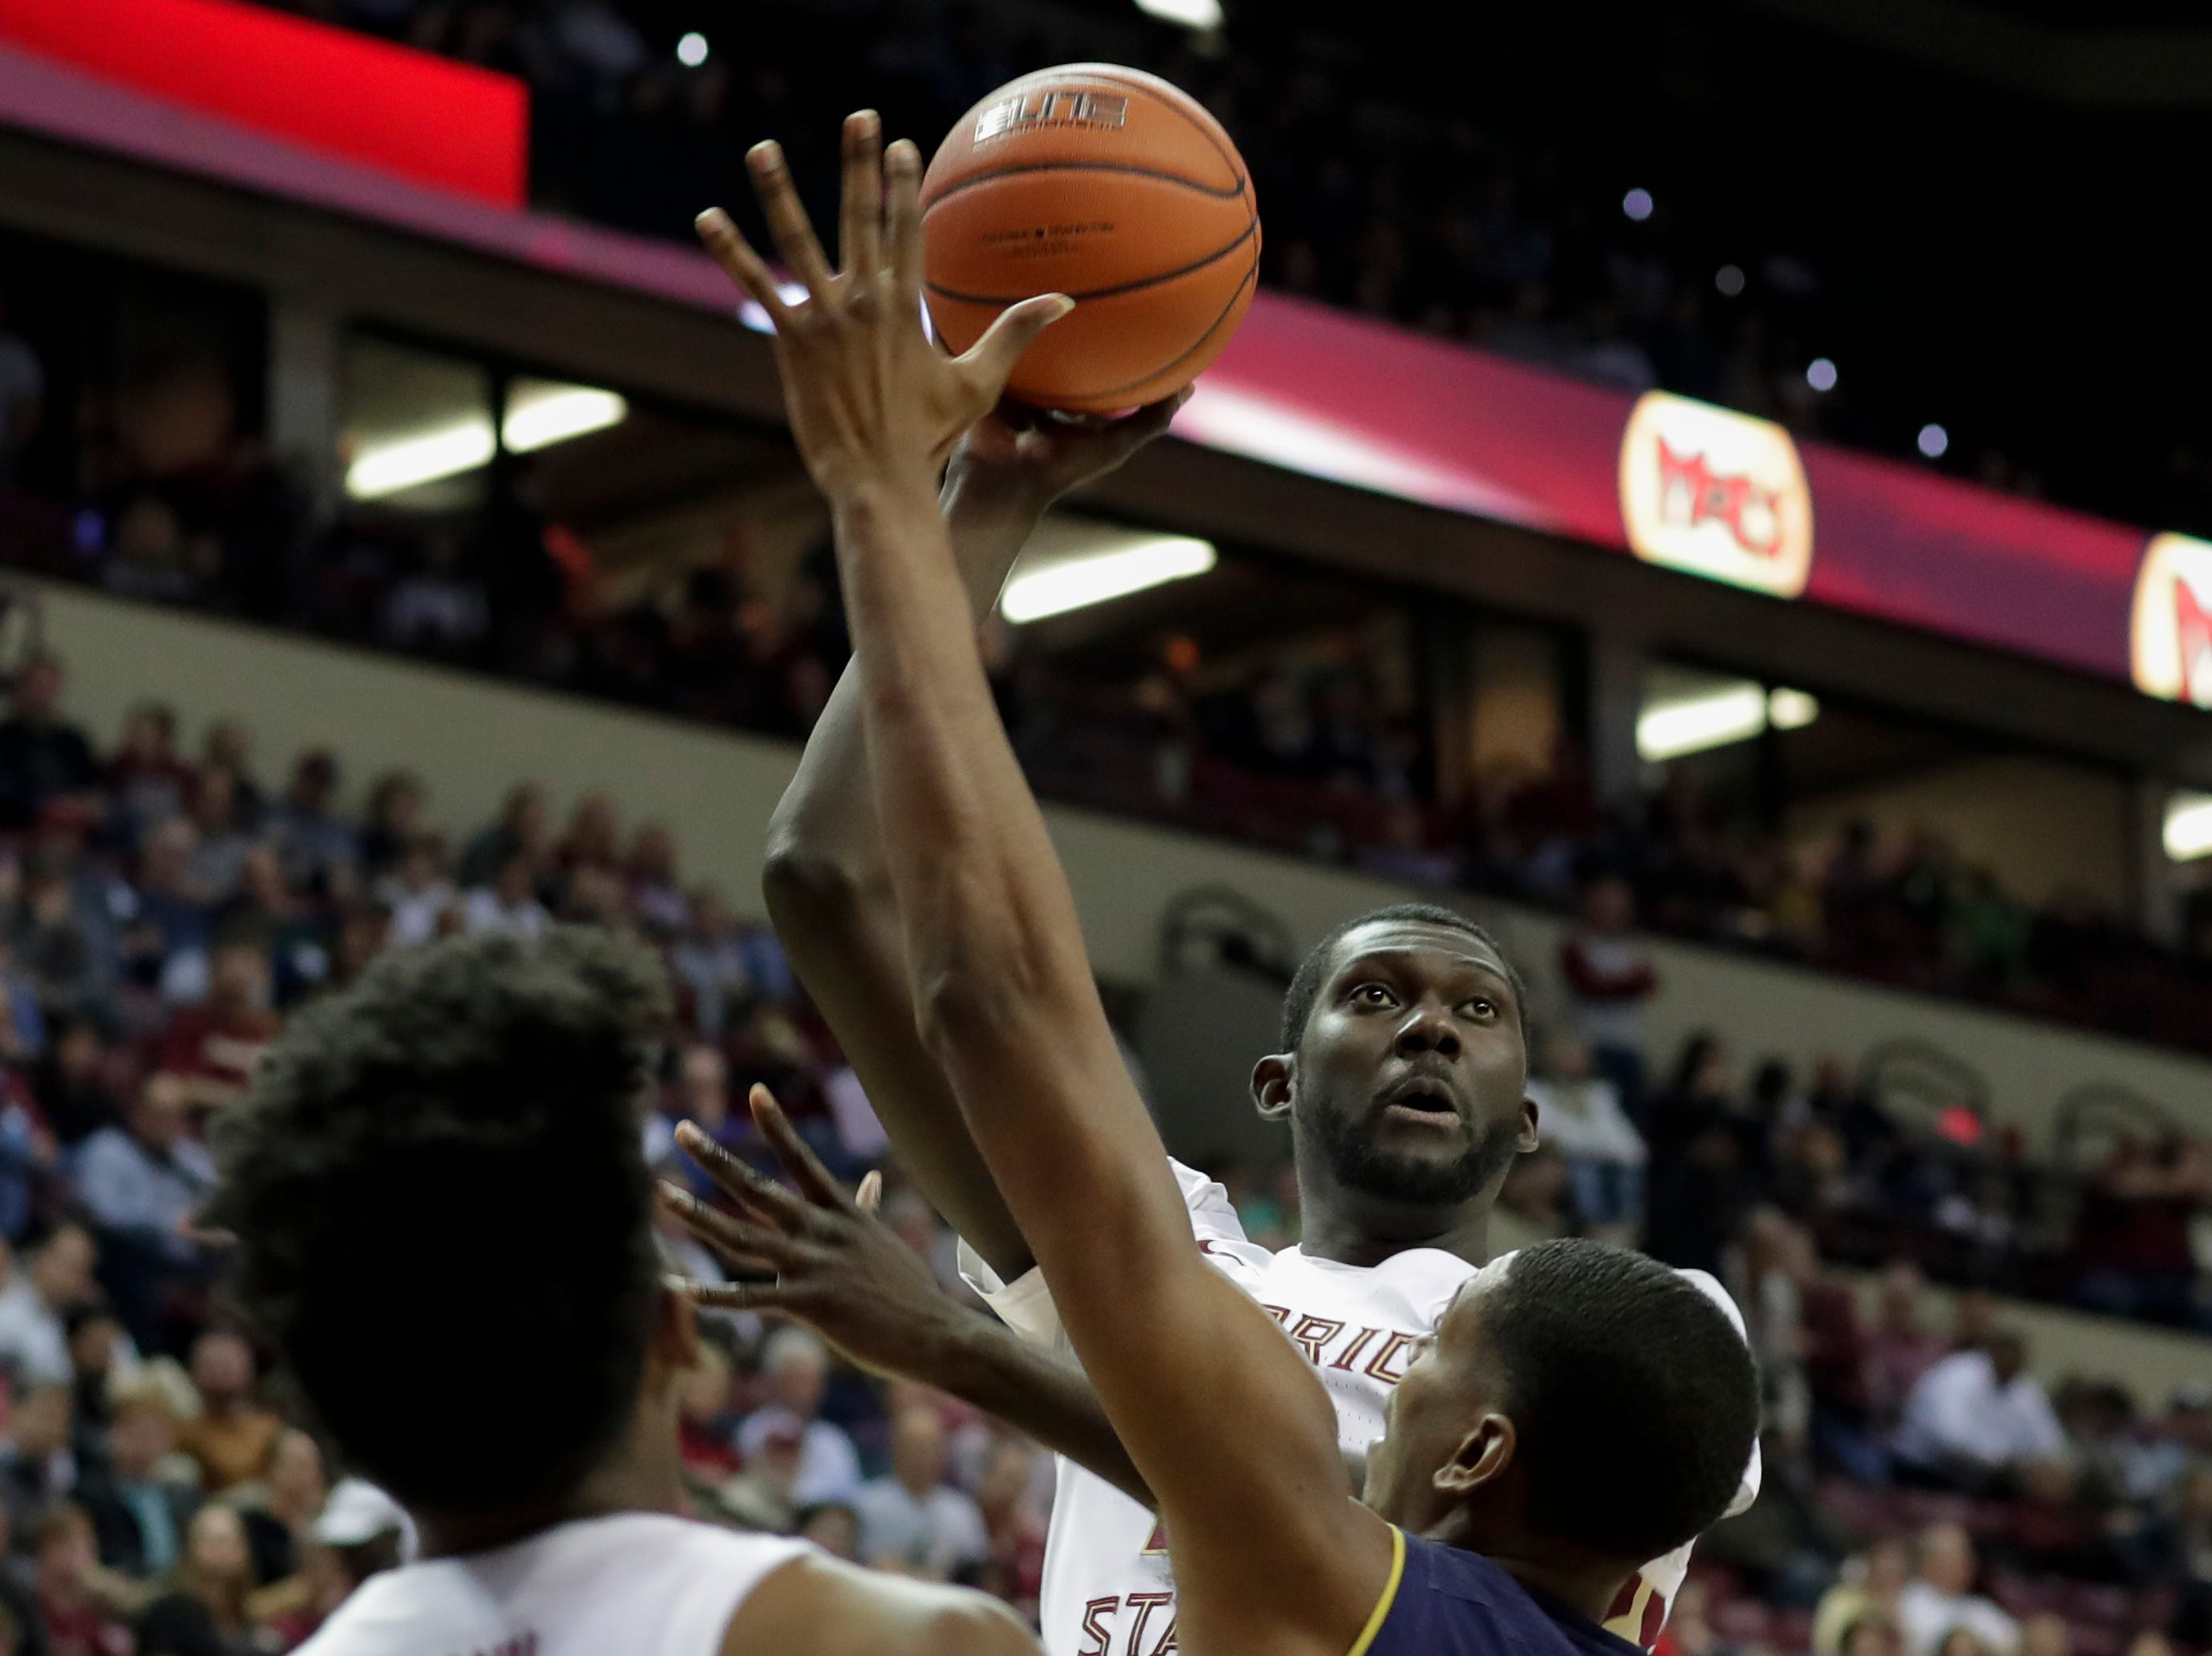 Florida State Seminoles center Christ Koumadje (21) shoots during a game between FSU and Notre Dame at the Donald L. Tucker Civic Center Monday, Feb. 25, 2019.